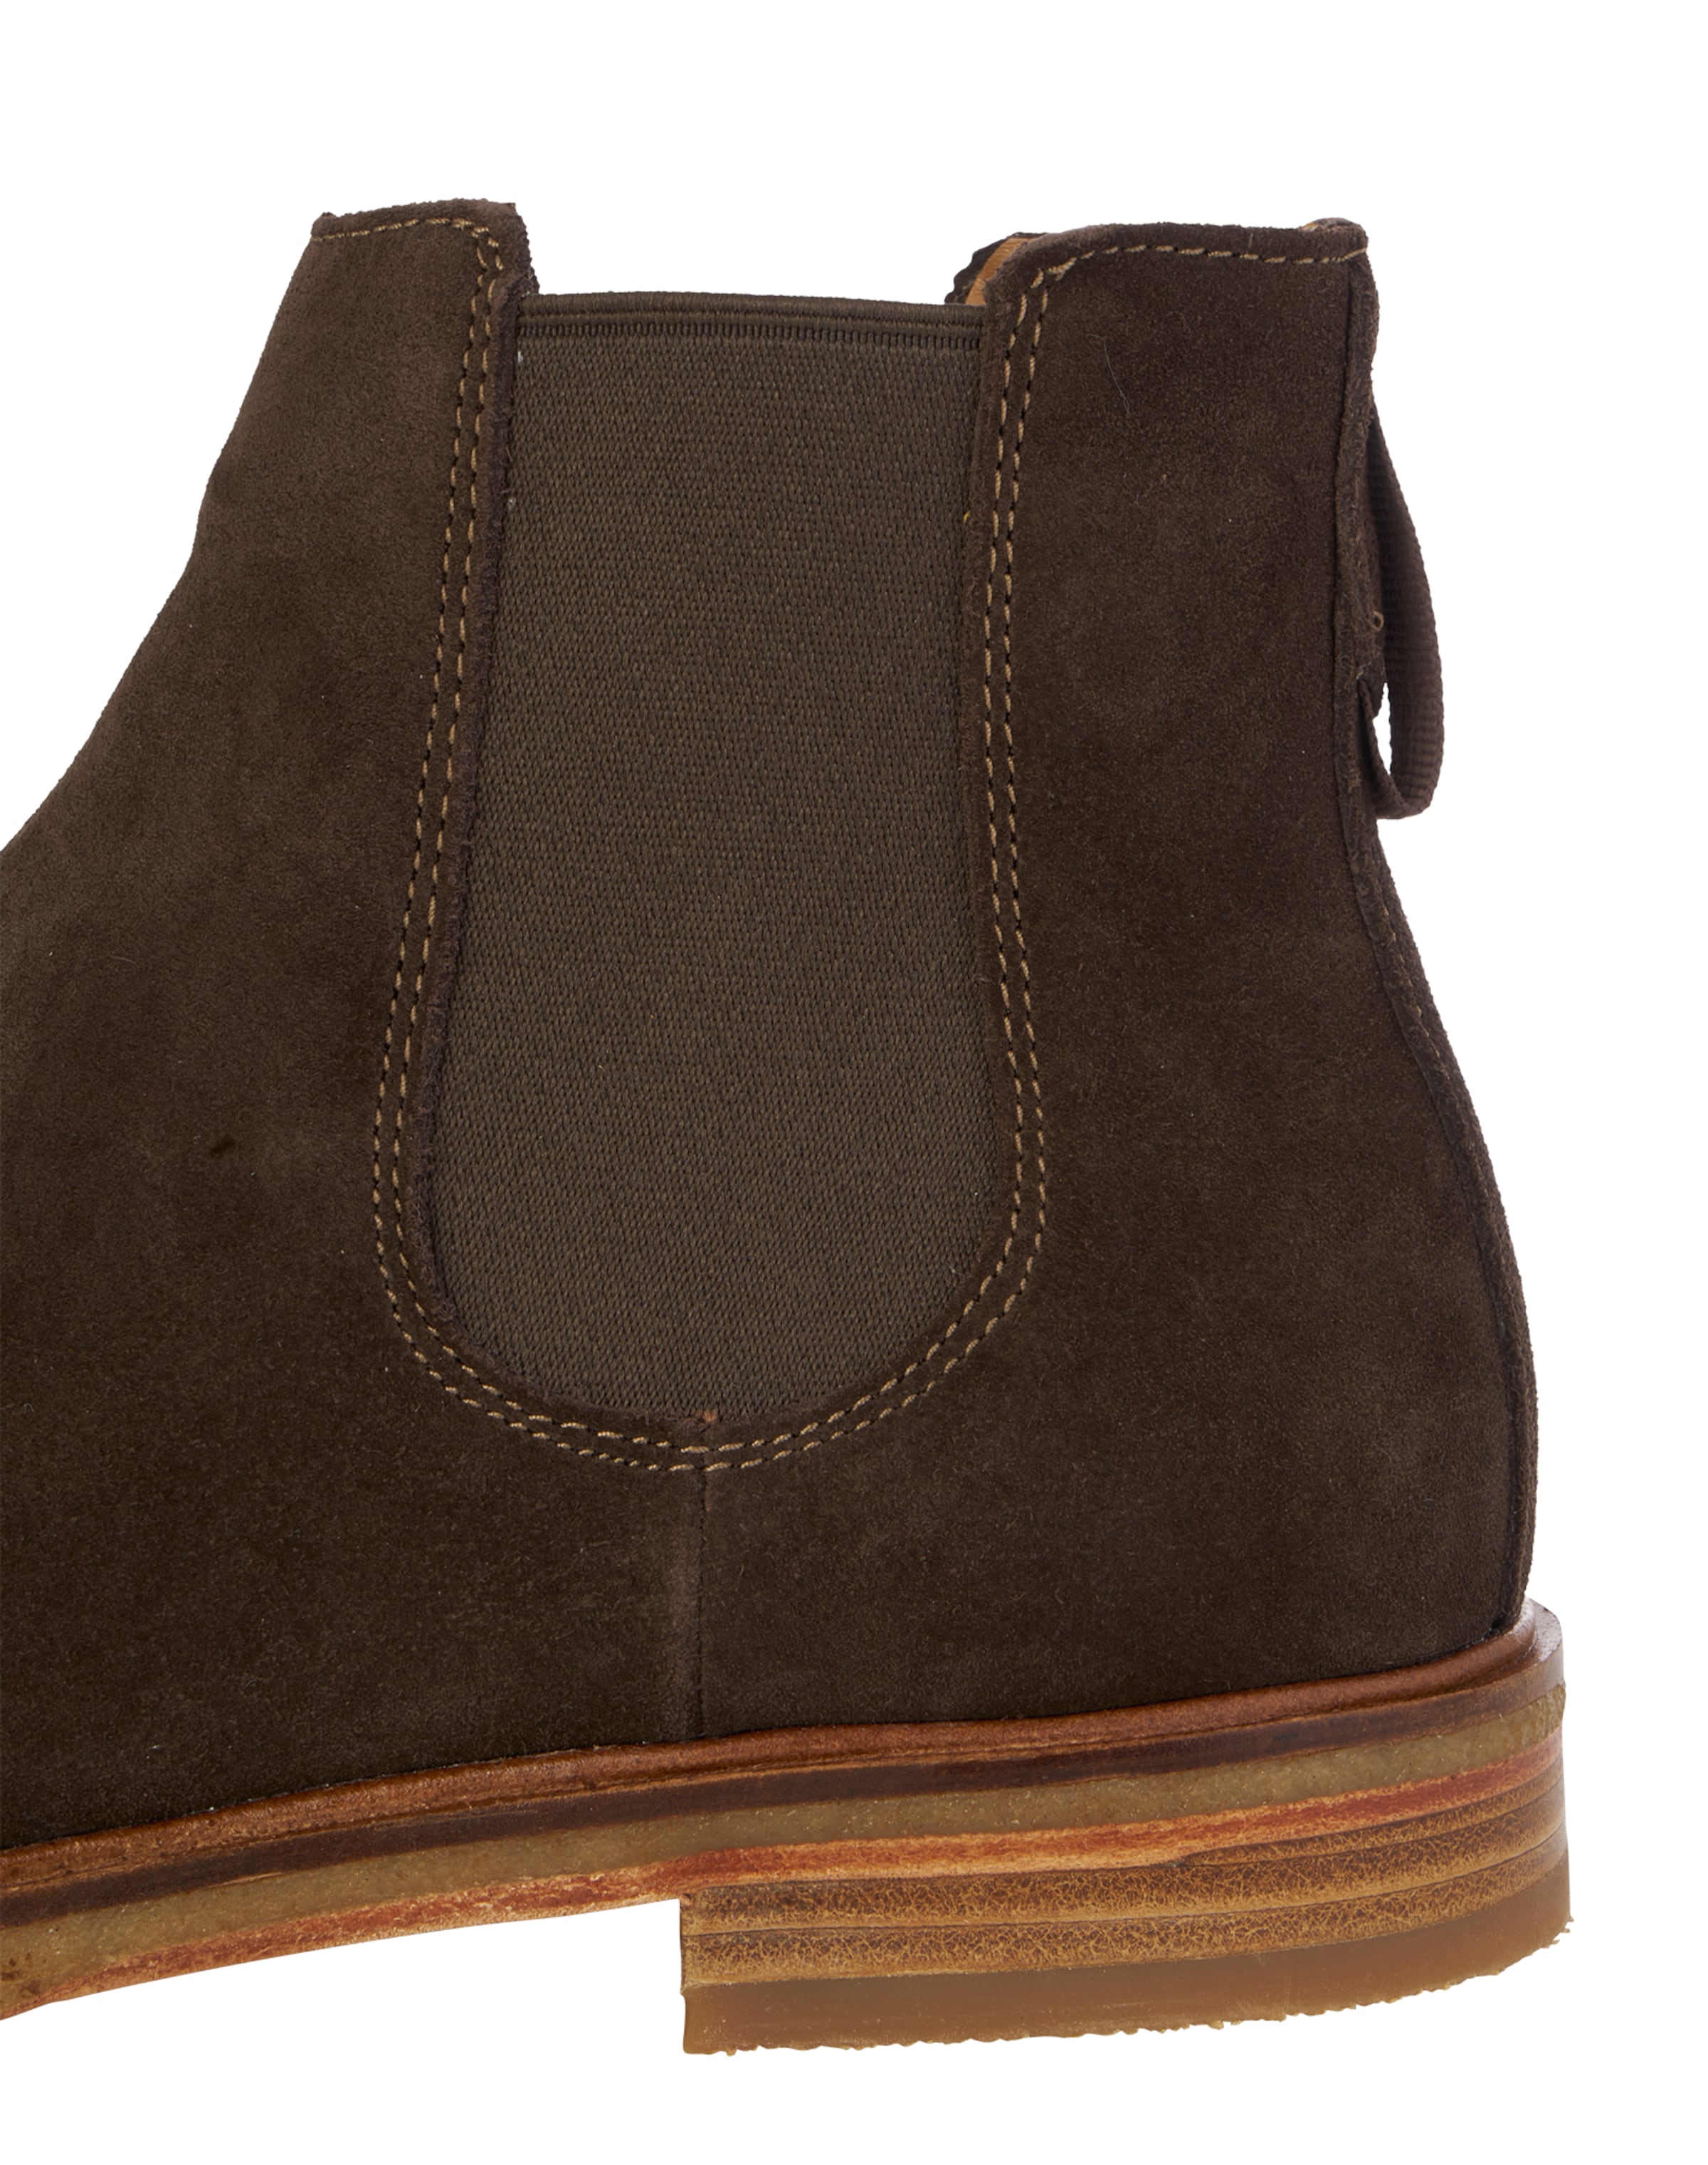 'clarkdale Clarks Chelsea In Dunkelbraun Gobi' Boots fgy6b7Y